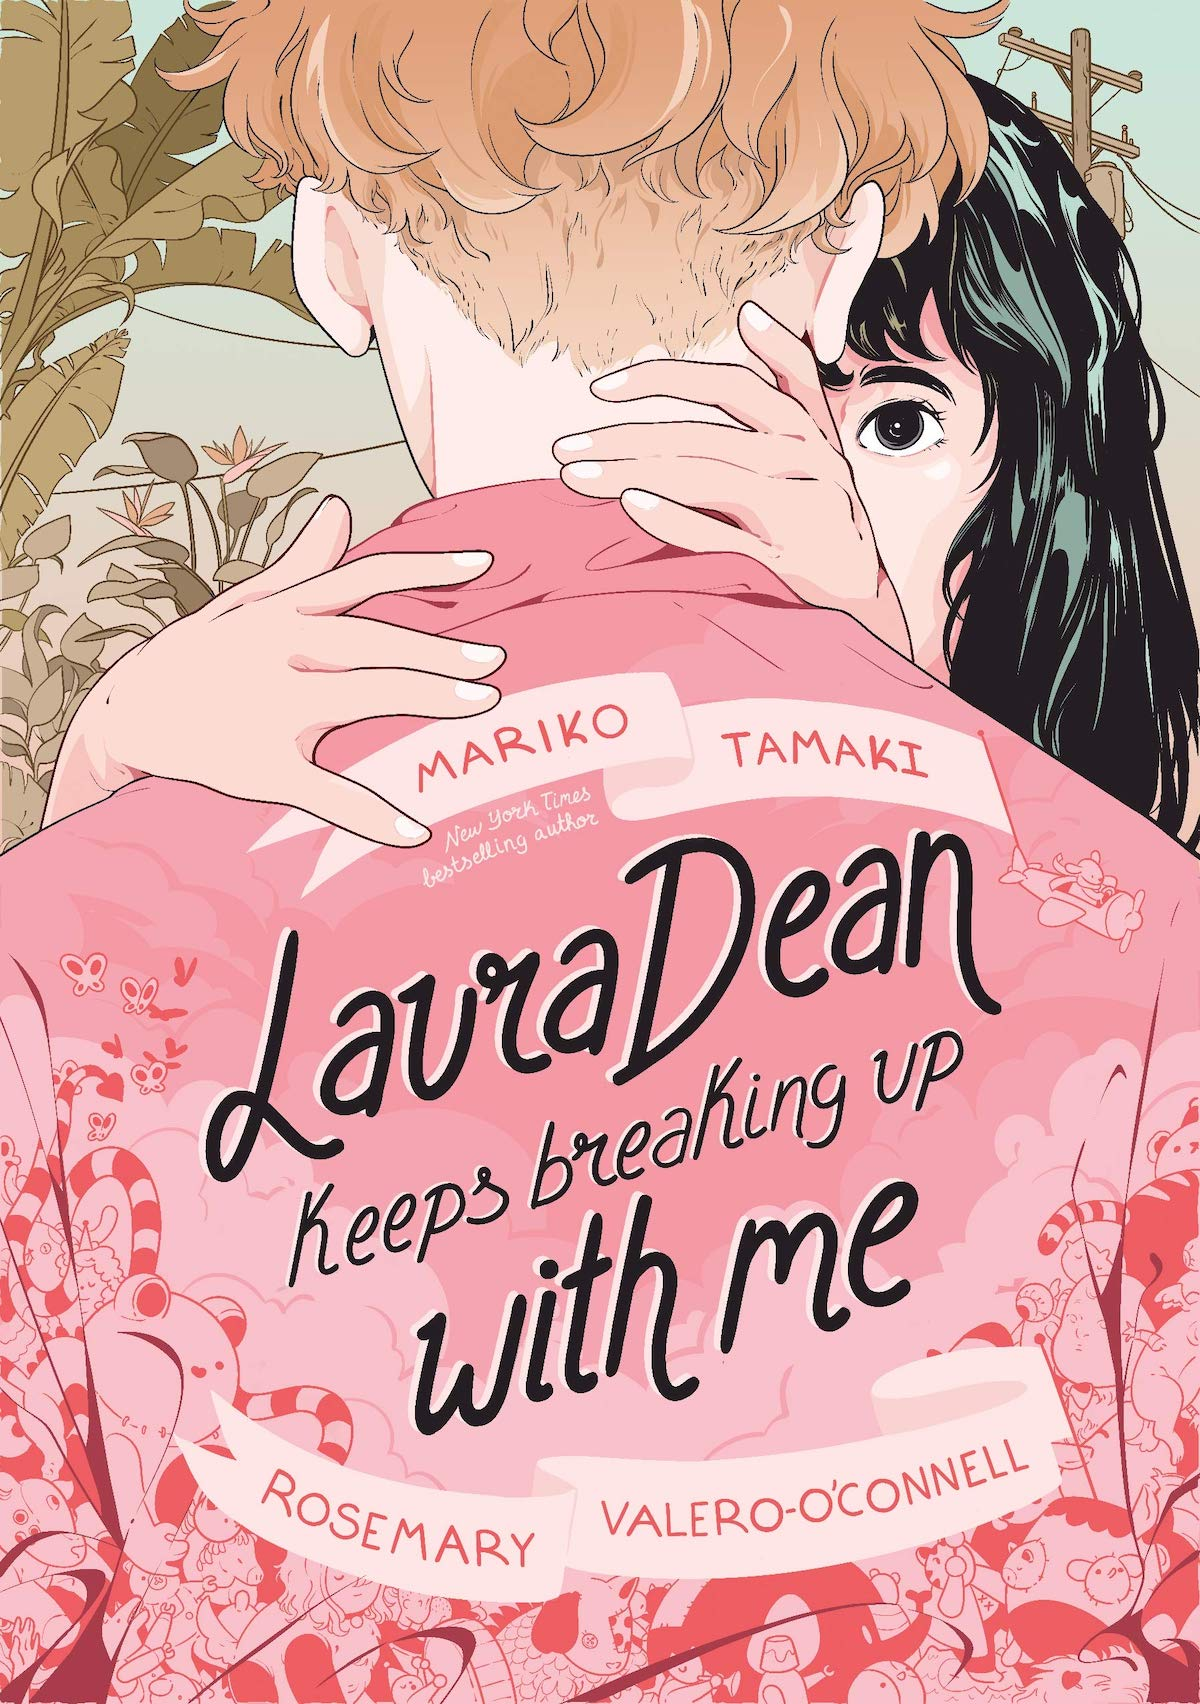 The 100 Best Comics of the Decade: Laura Dean Keeps Breaking Up With Me